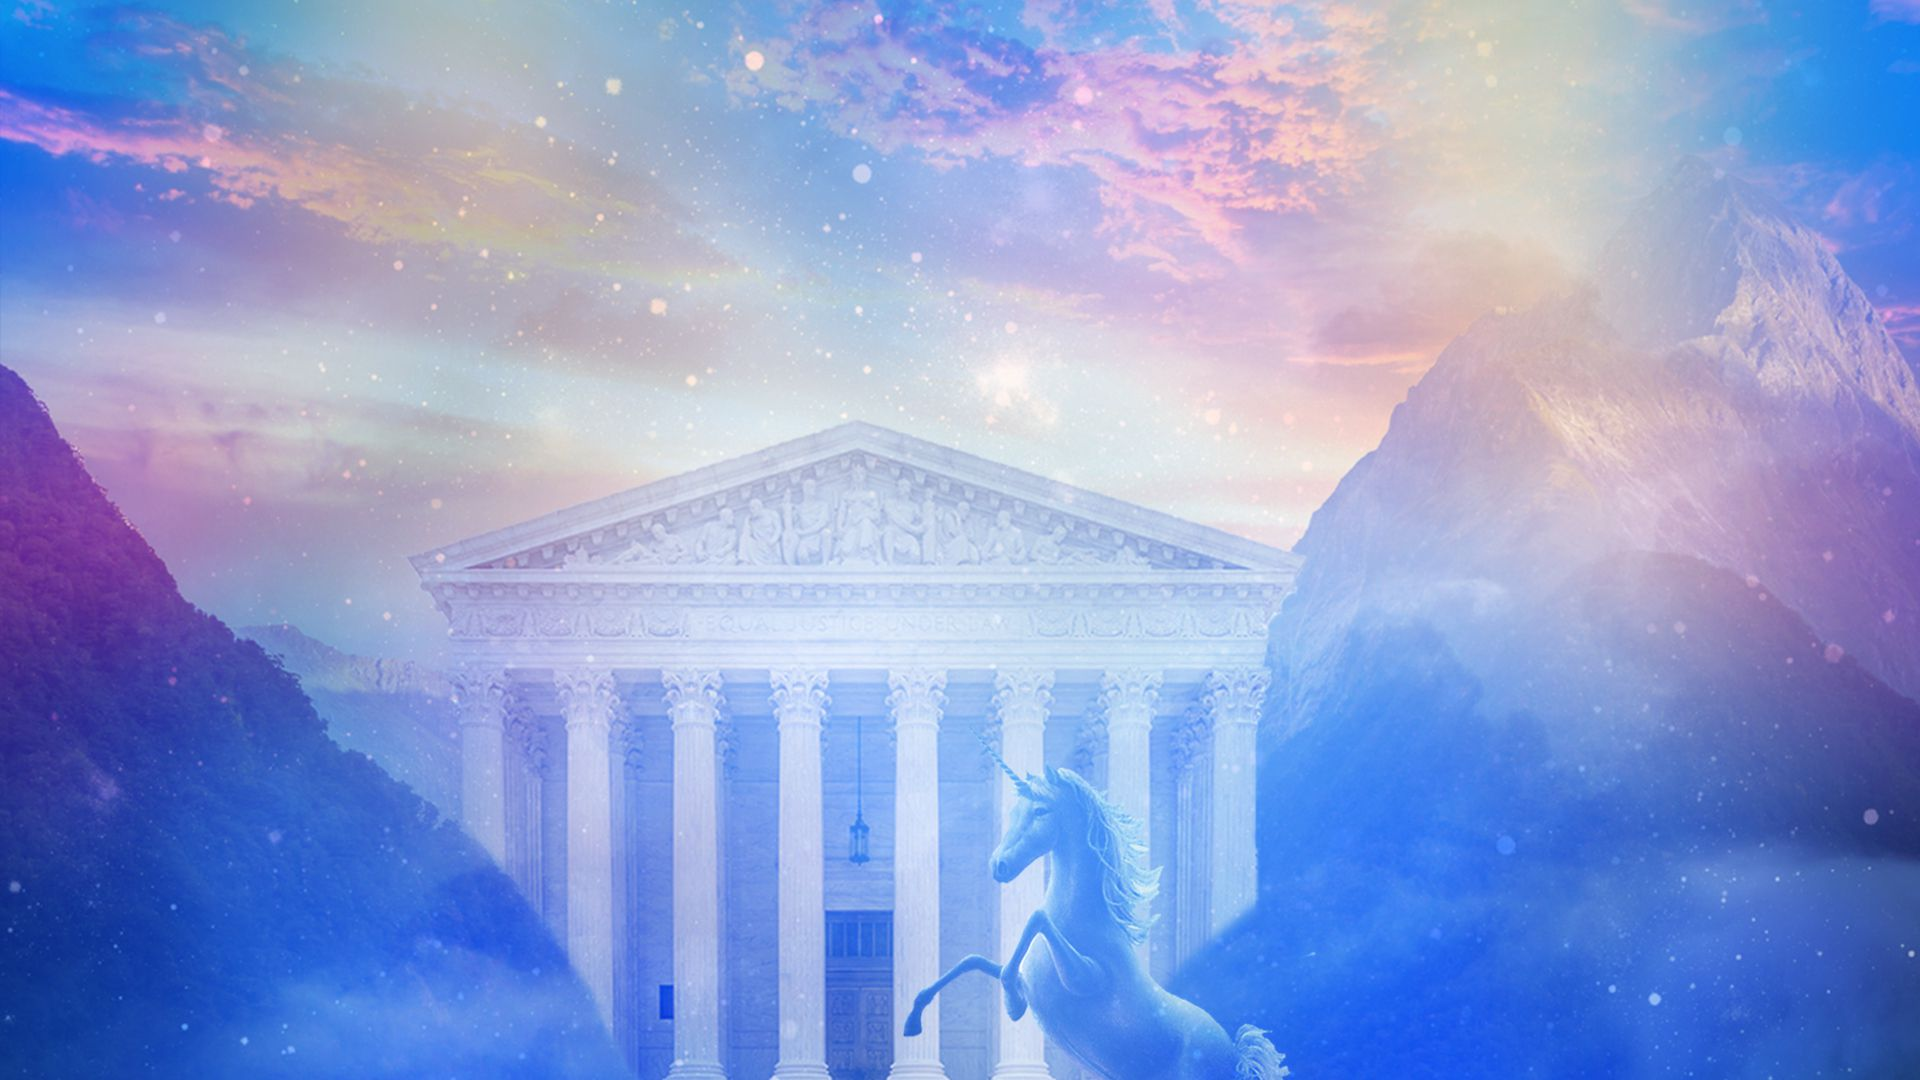 An illustration of the Supreme Court surrounded by pink and purple clouds with a unicorn in front of it